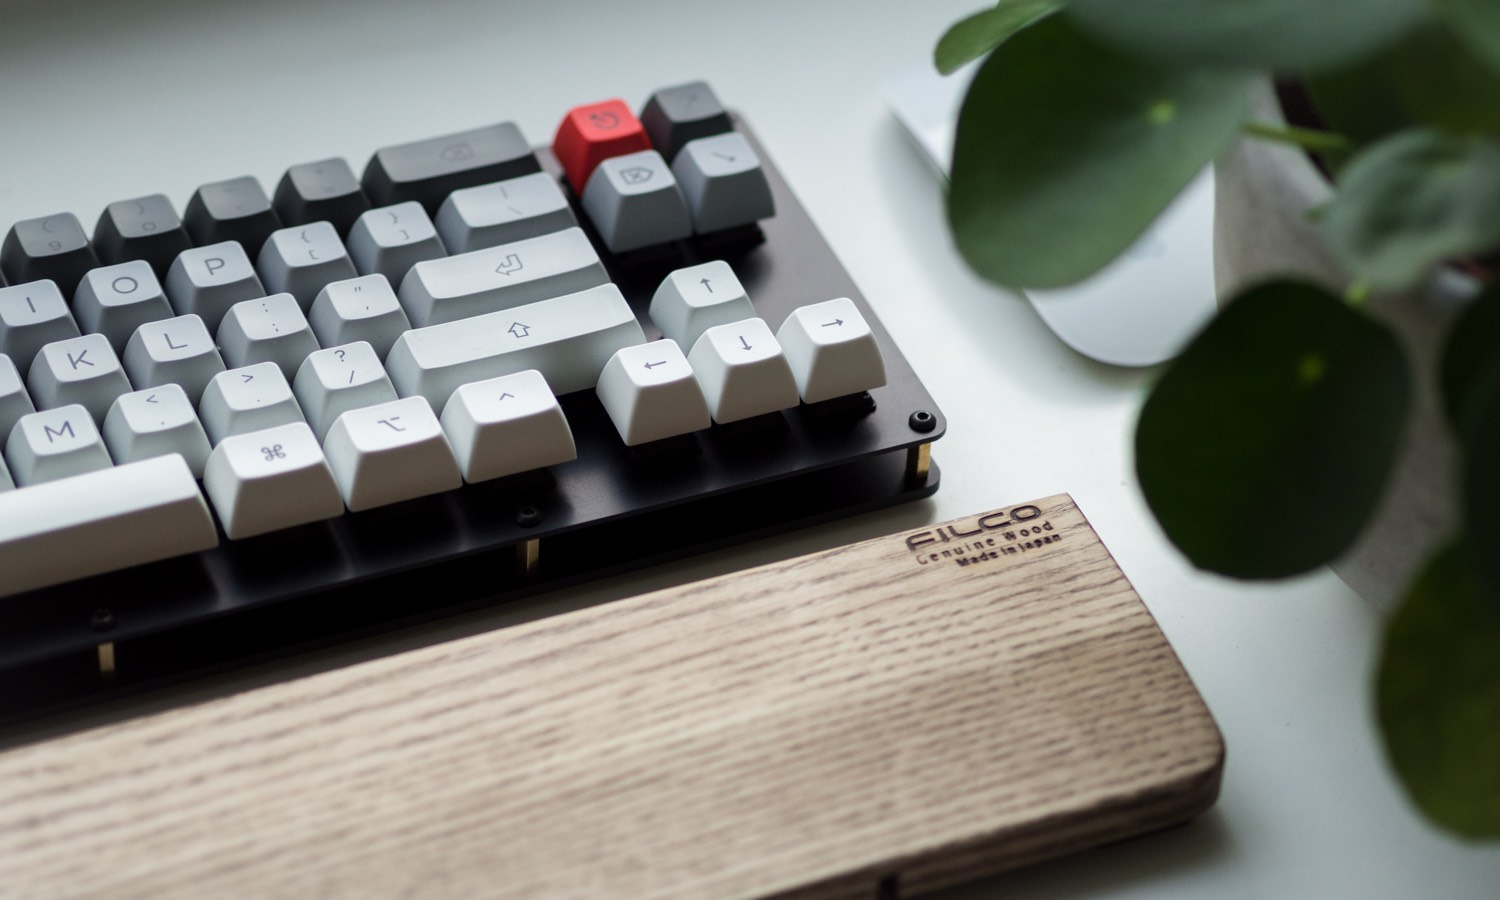 Custom 68% Mechanical Keyboard DIY Guide - 68Keys io